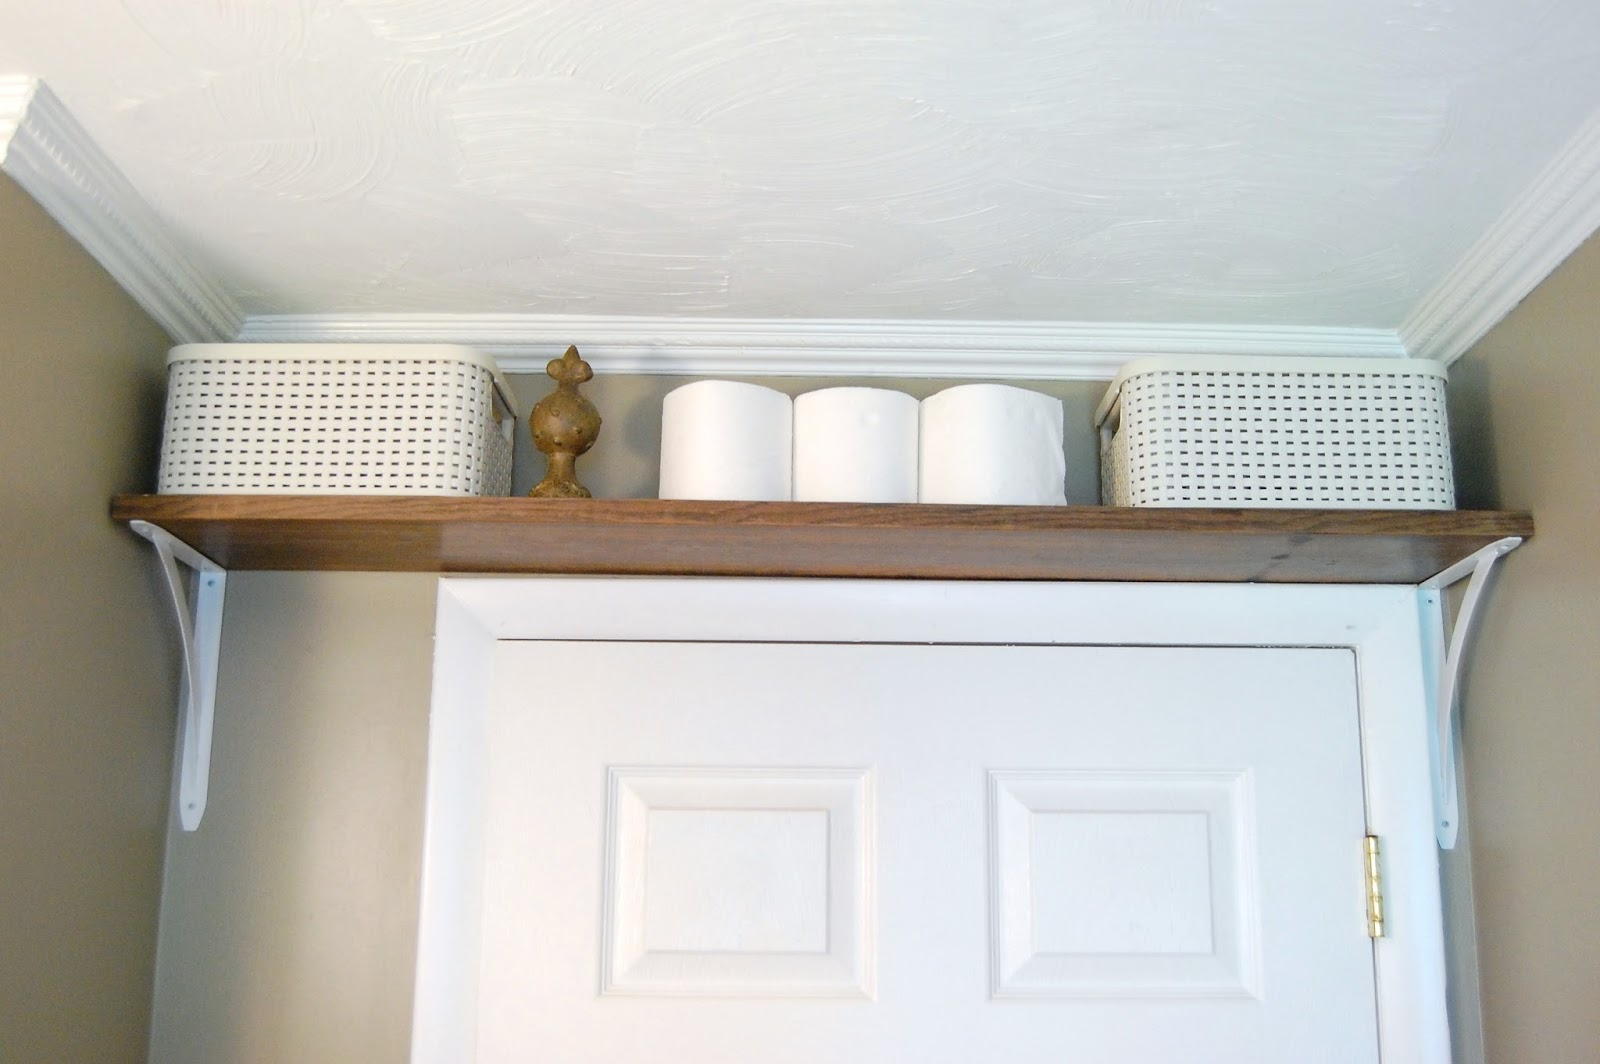 Is there space for a shelf above the door?